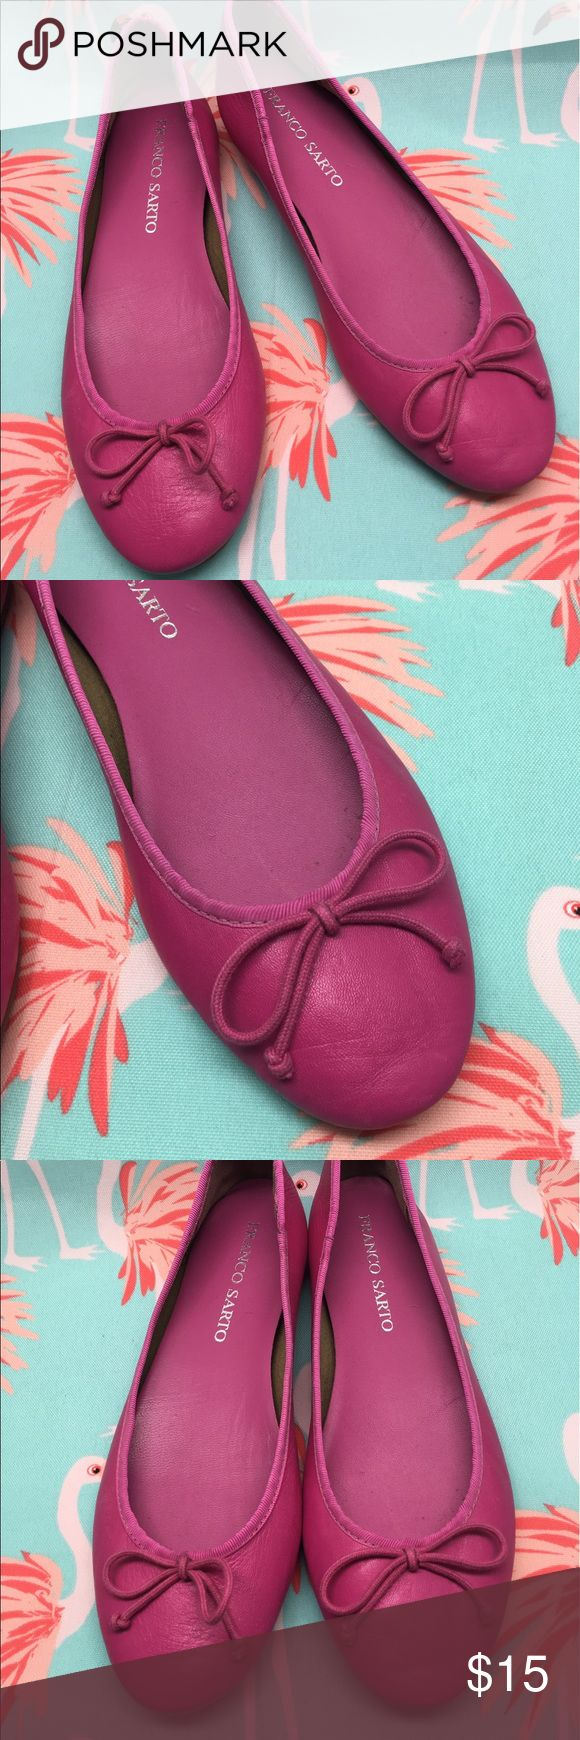 Franco Sarto Hot Pink Ballet Flats Sz 8 EUC SIZE 8  BRAND FRANCO SARTO  COLOR HOT PINK  STYLE BALLET FLATS  EUC  Beautiful shoes that will make an excellent addition to any wardrobe!  Thank you for looking  Feel free to ask me any questions and be sure to check out my page for more items! Franco Sarto Shoes Flats & Loafers